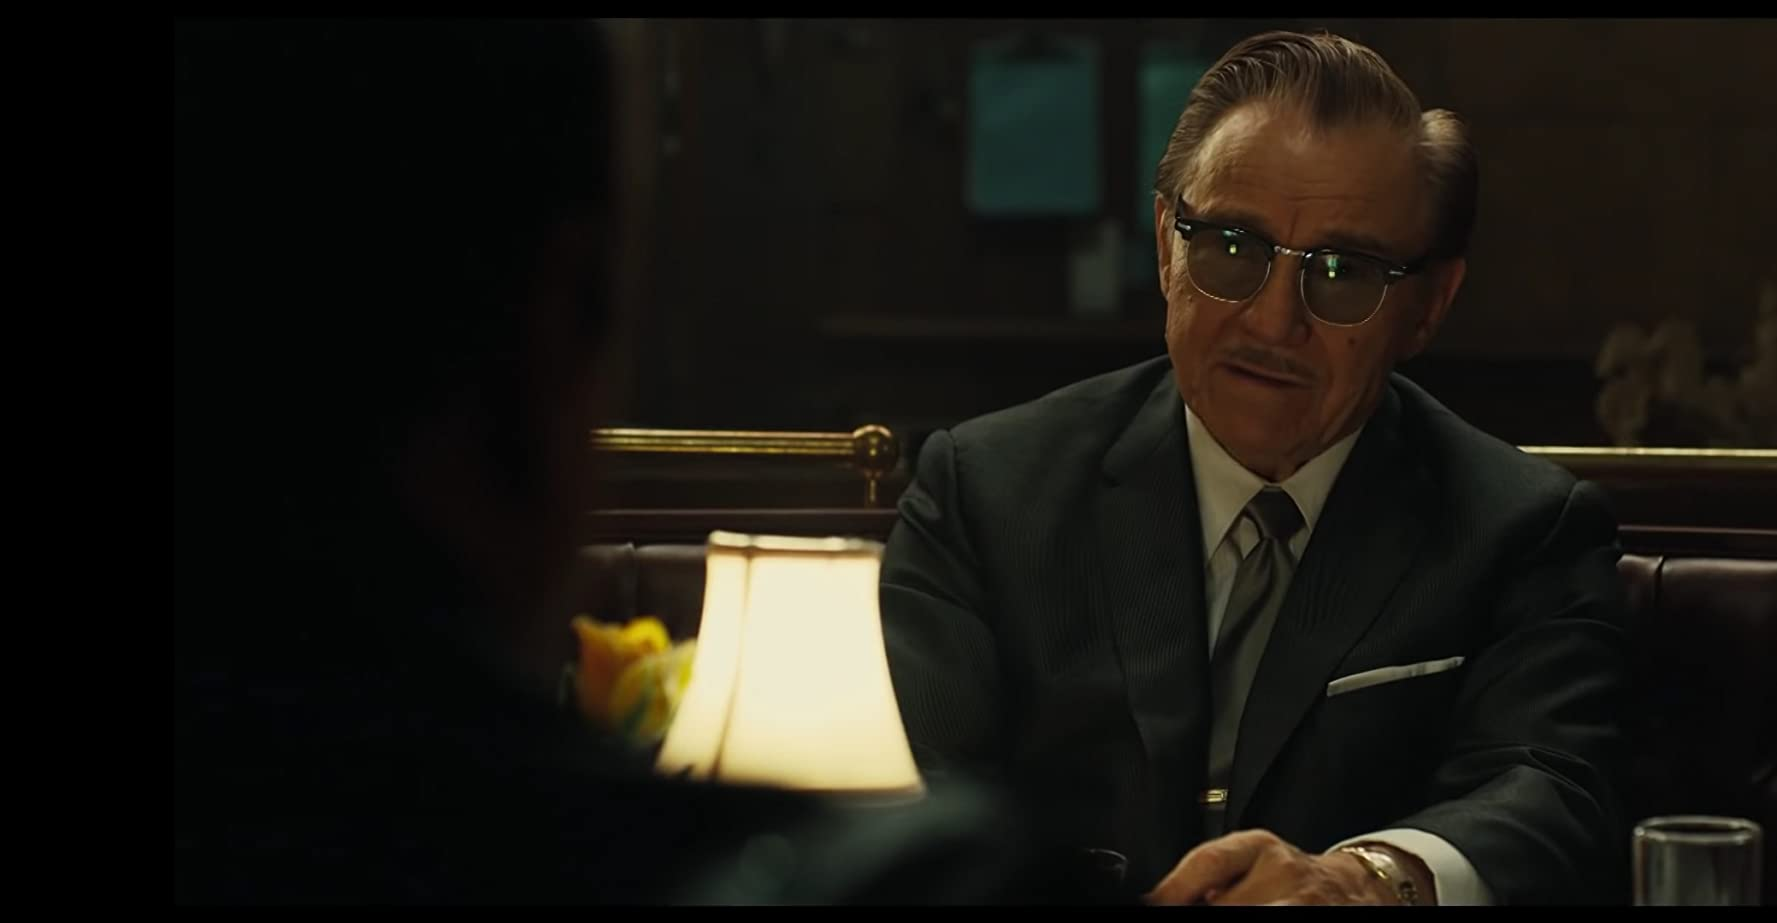 Robert De Niro and Harvey Keitel in The Irishman (2019)